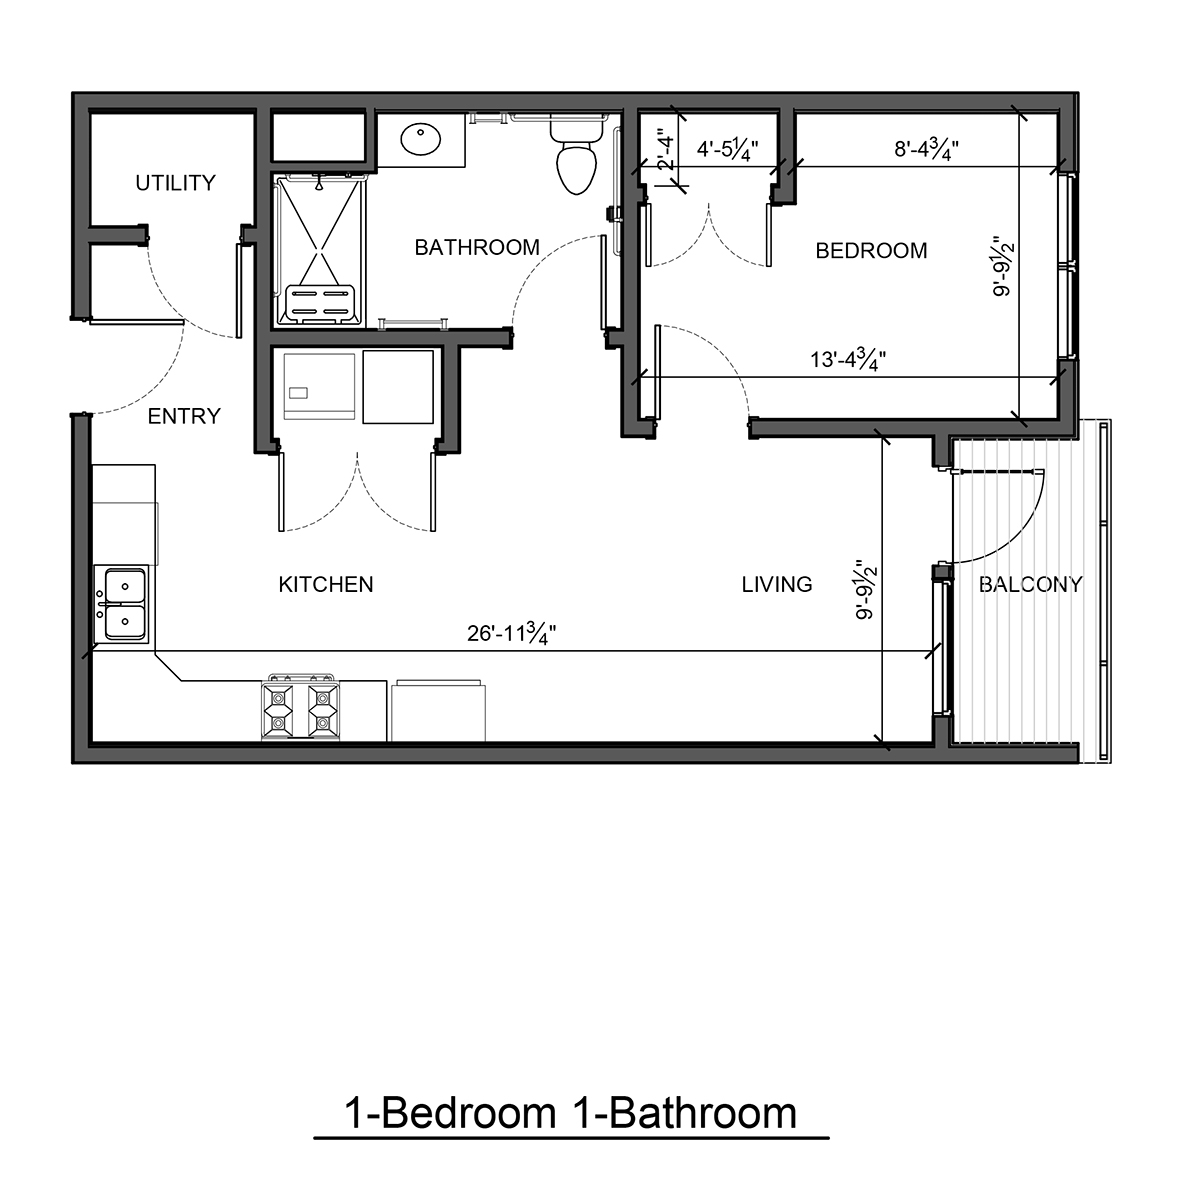 1 Bedroom with Dimensions (002).jpg